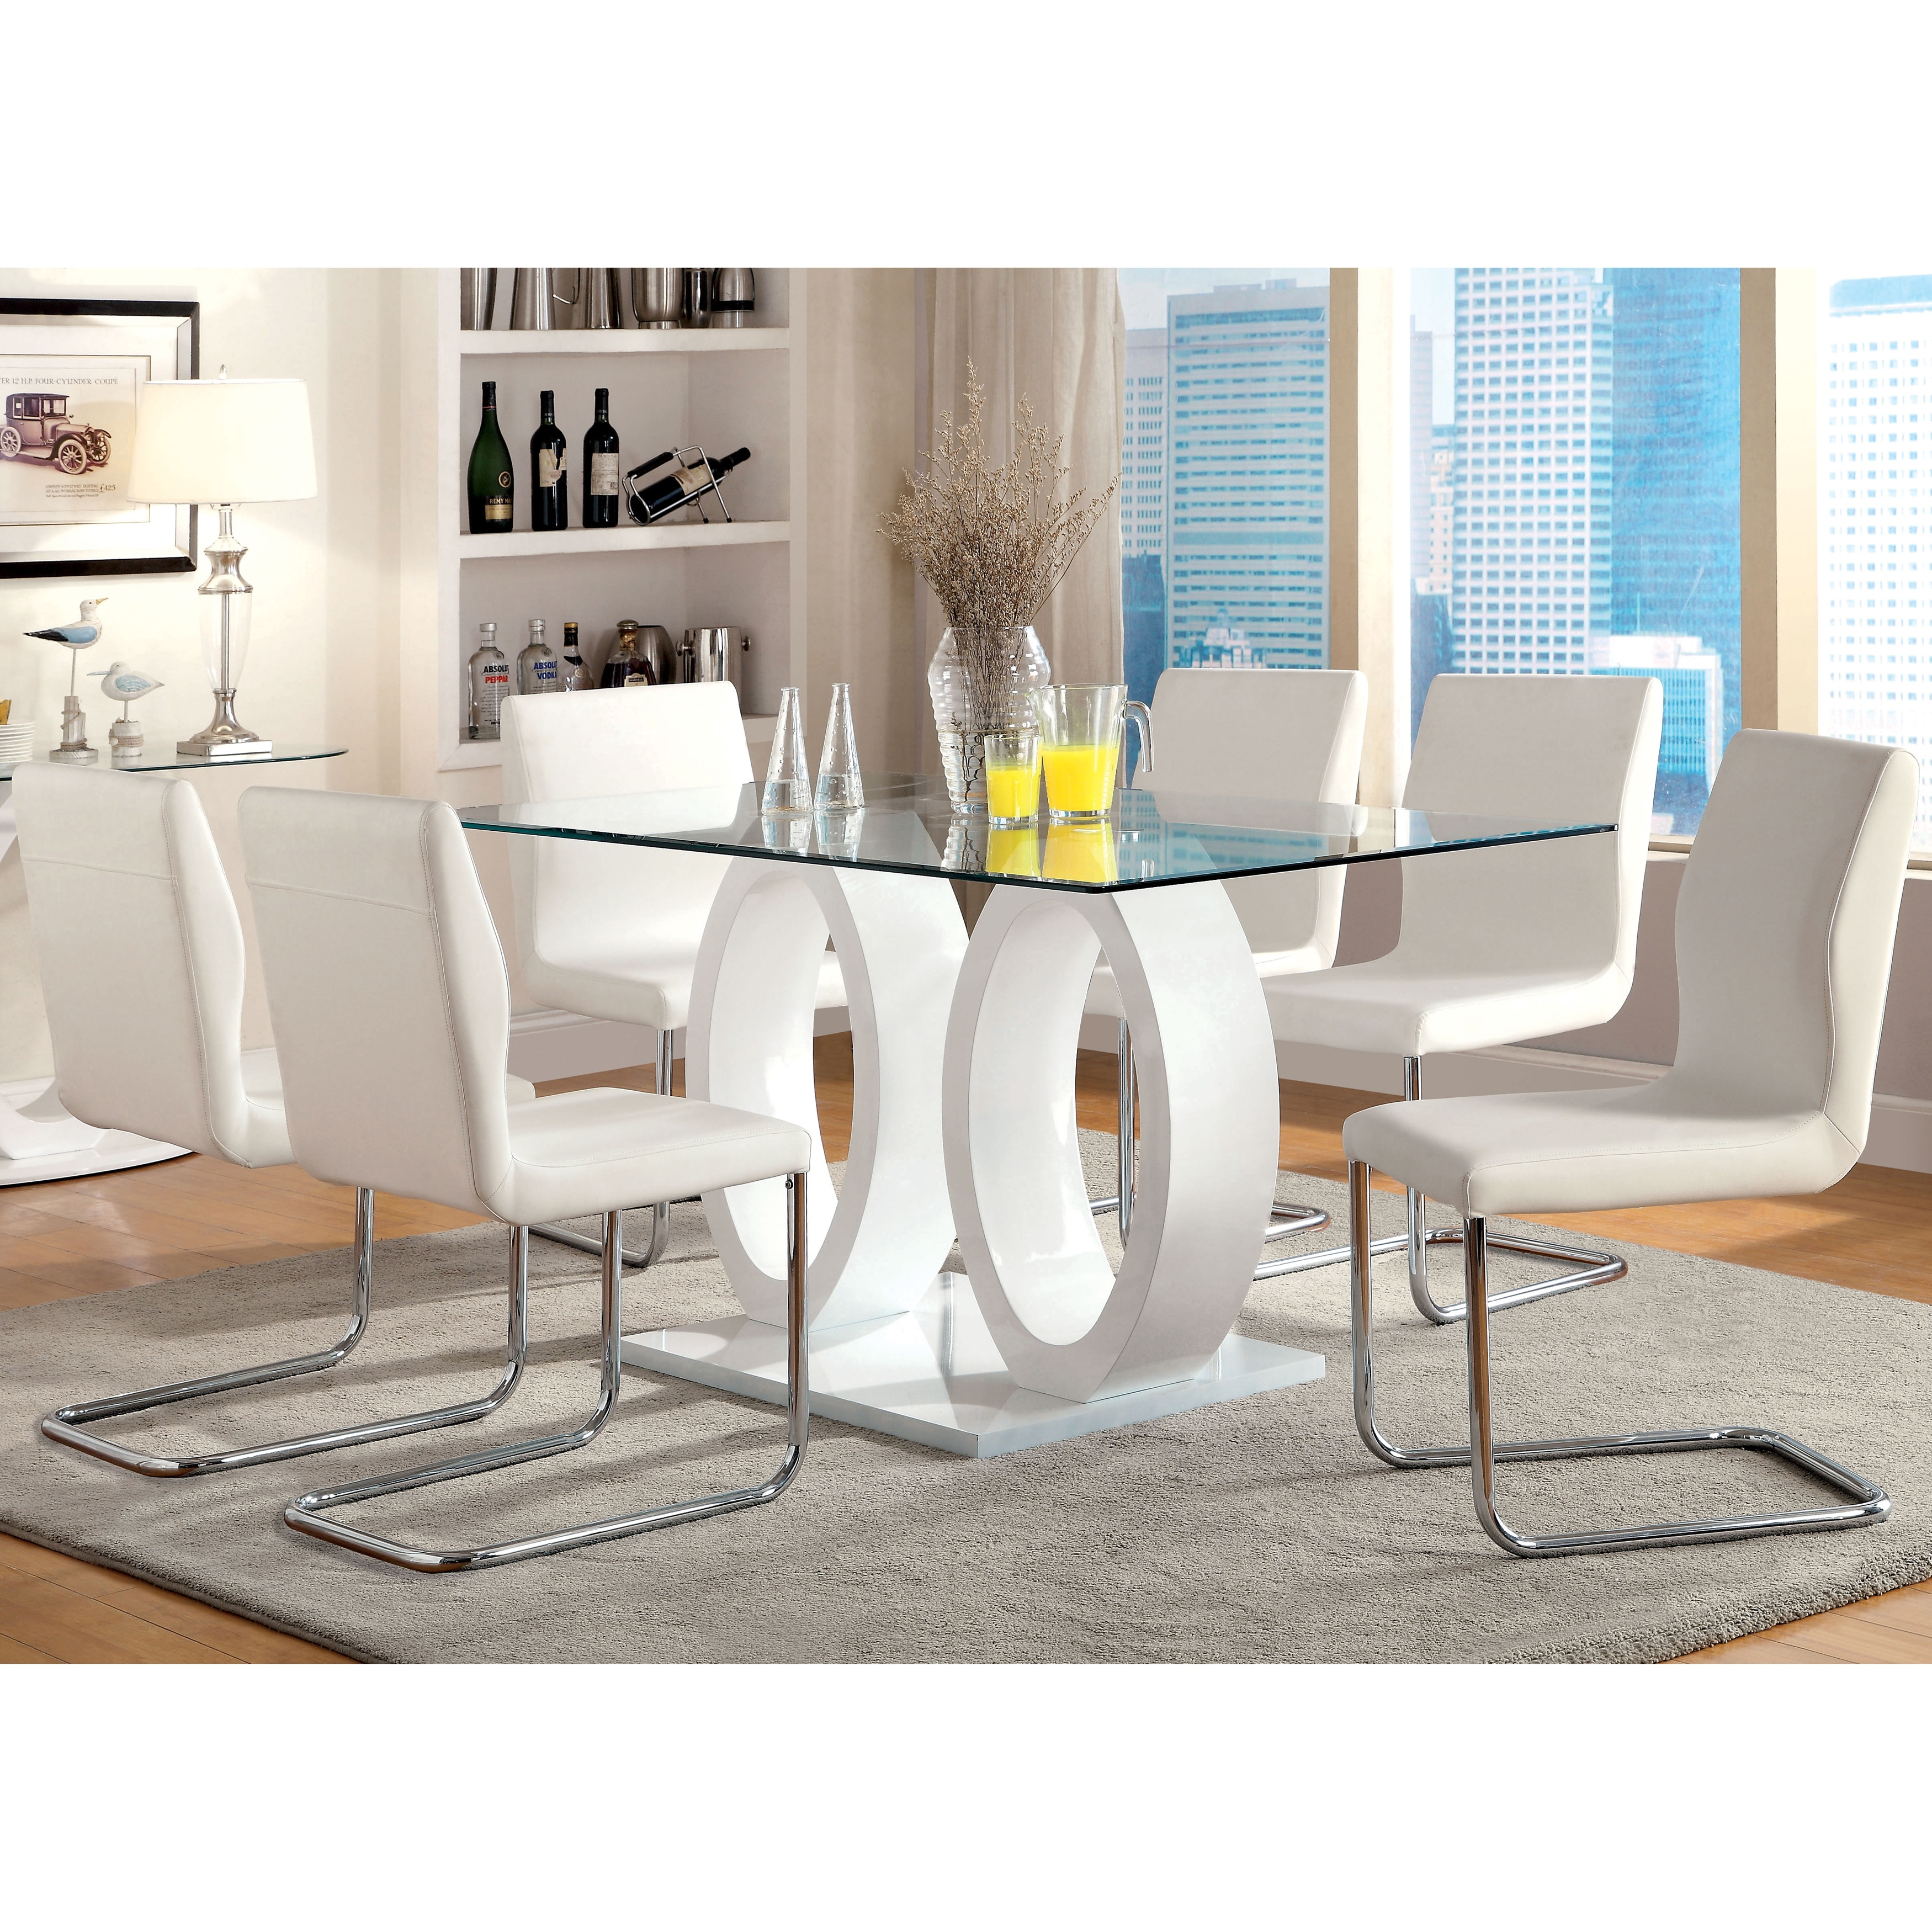 Furniture of America Olgette Contemporary High Gloss Dini...